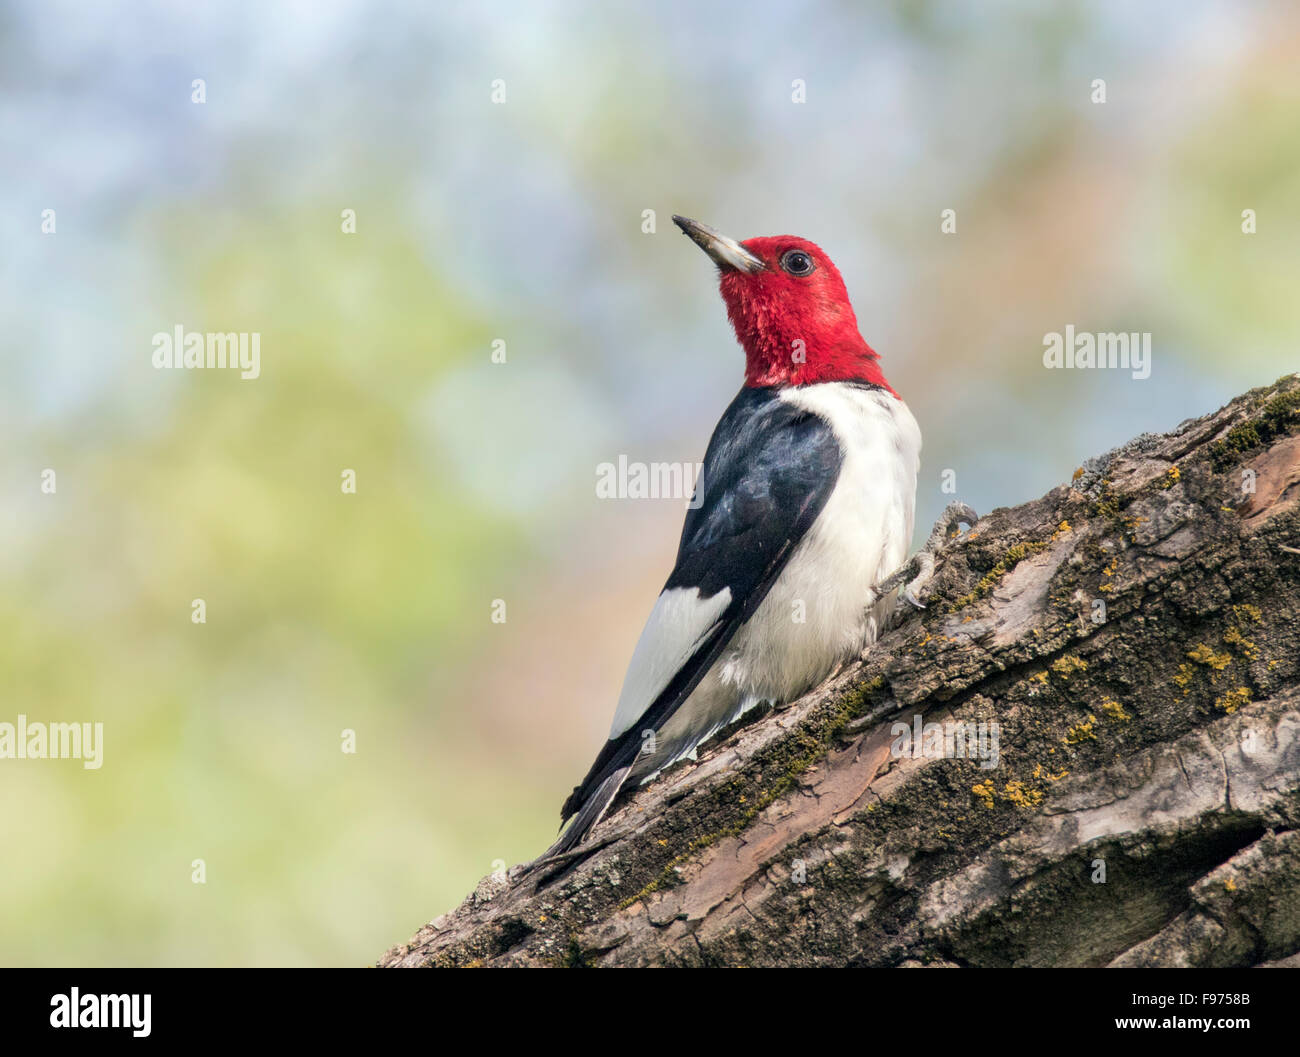 A Redheaded Woodpecker (Melanerpes erythrocephalus)  perched on a tree in Theodore Roosevelt National Park - Stock Image